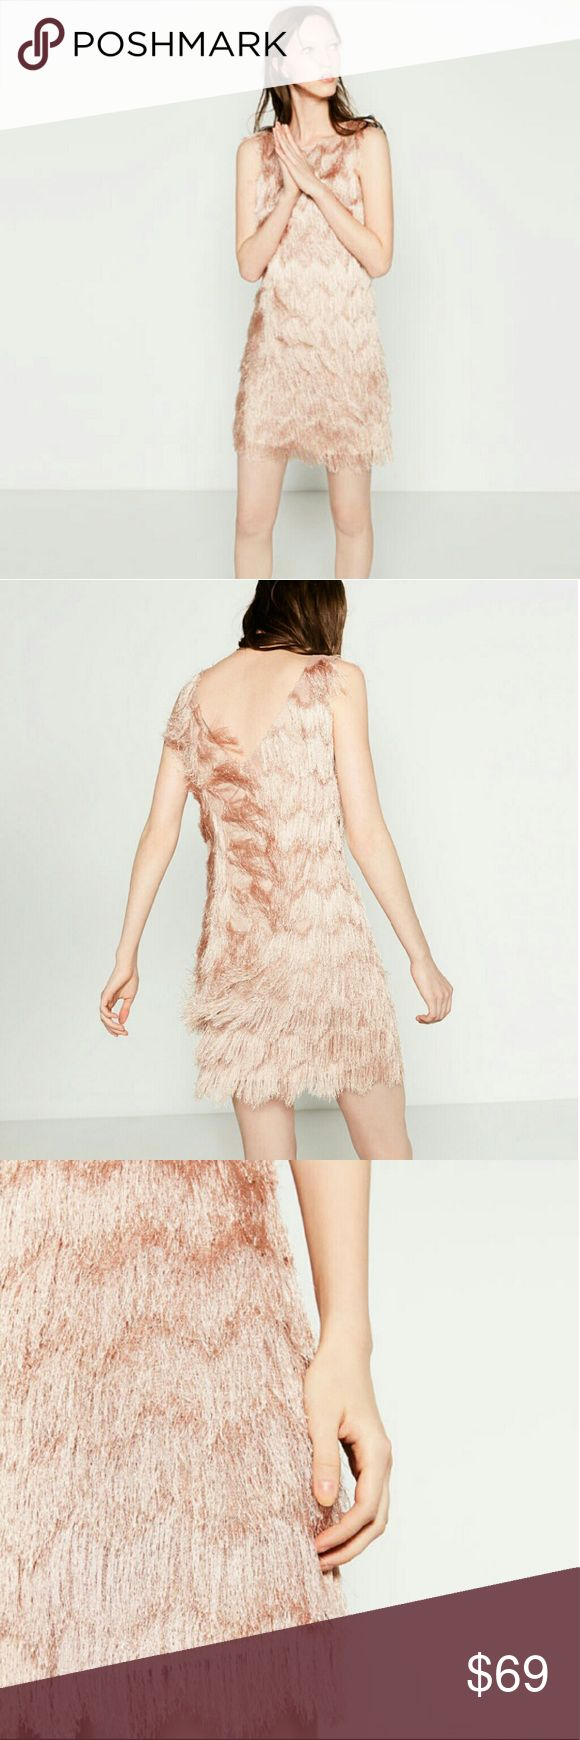 Clearout 2days only! Zara dress( Price is firm ) Super cute. Pale rose pink. Brand new  Reduced from $69. No offers. Zara Dresses